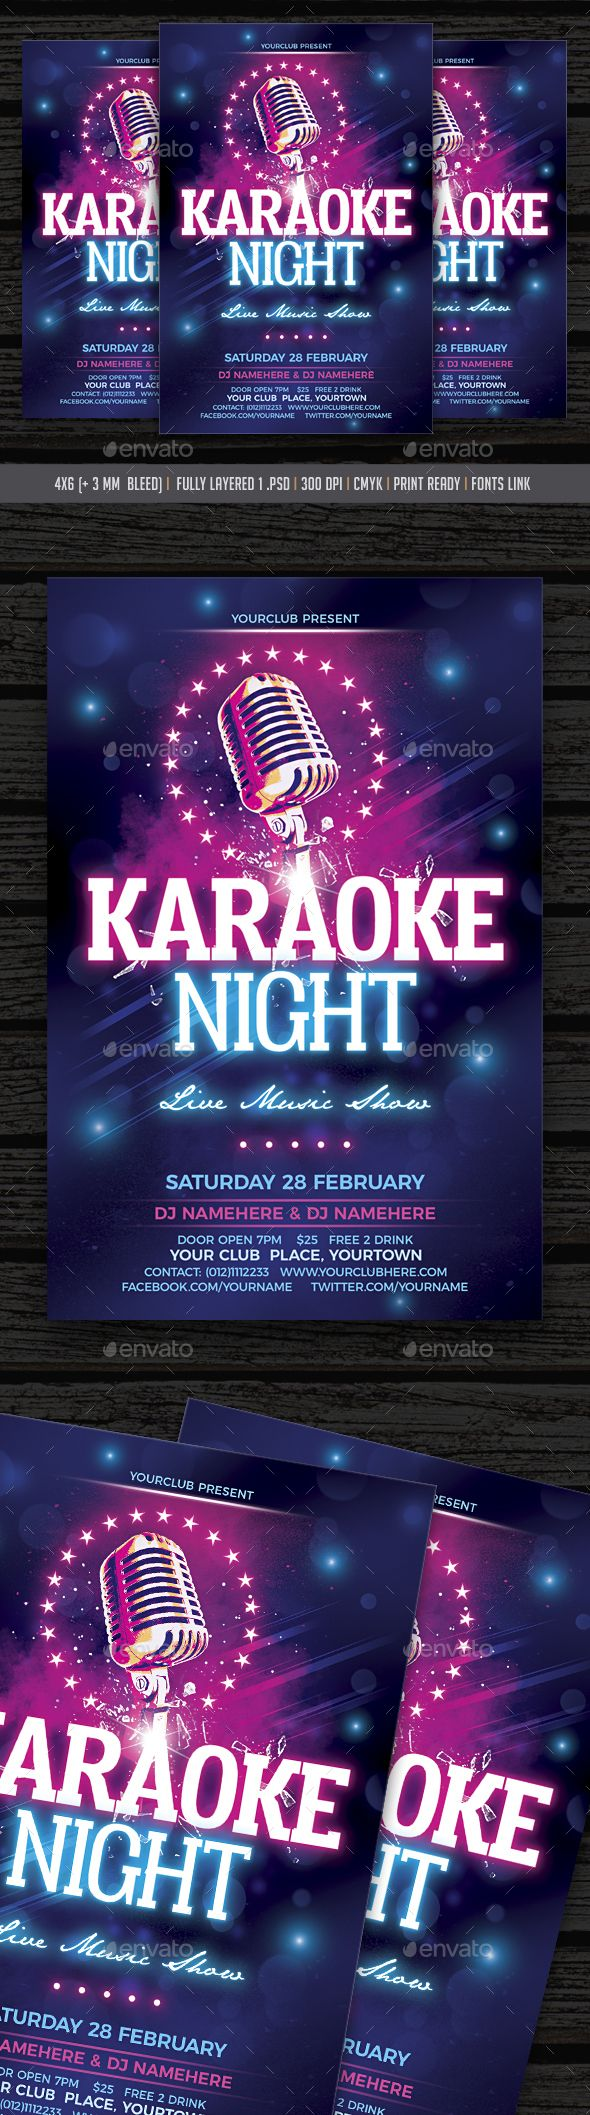 Karaoke Night  Karaoke Flyer Template And Template